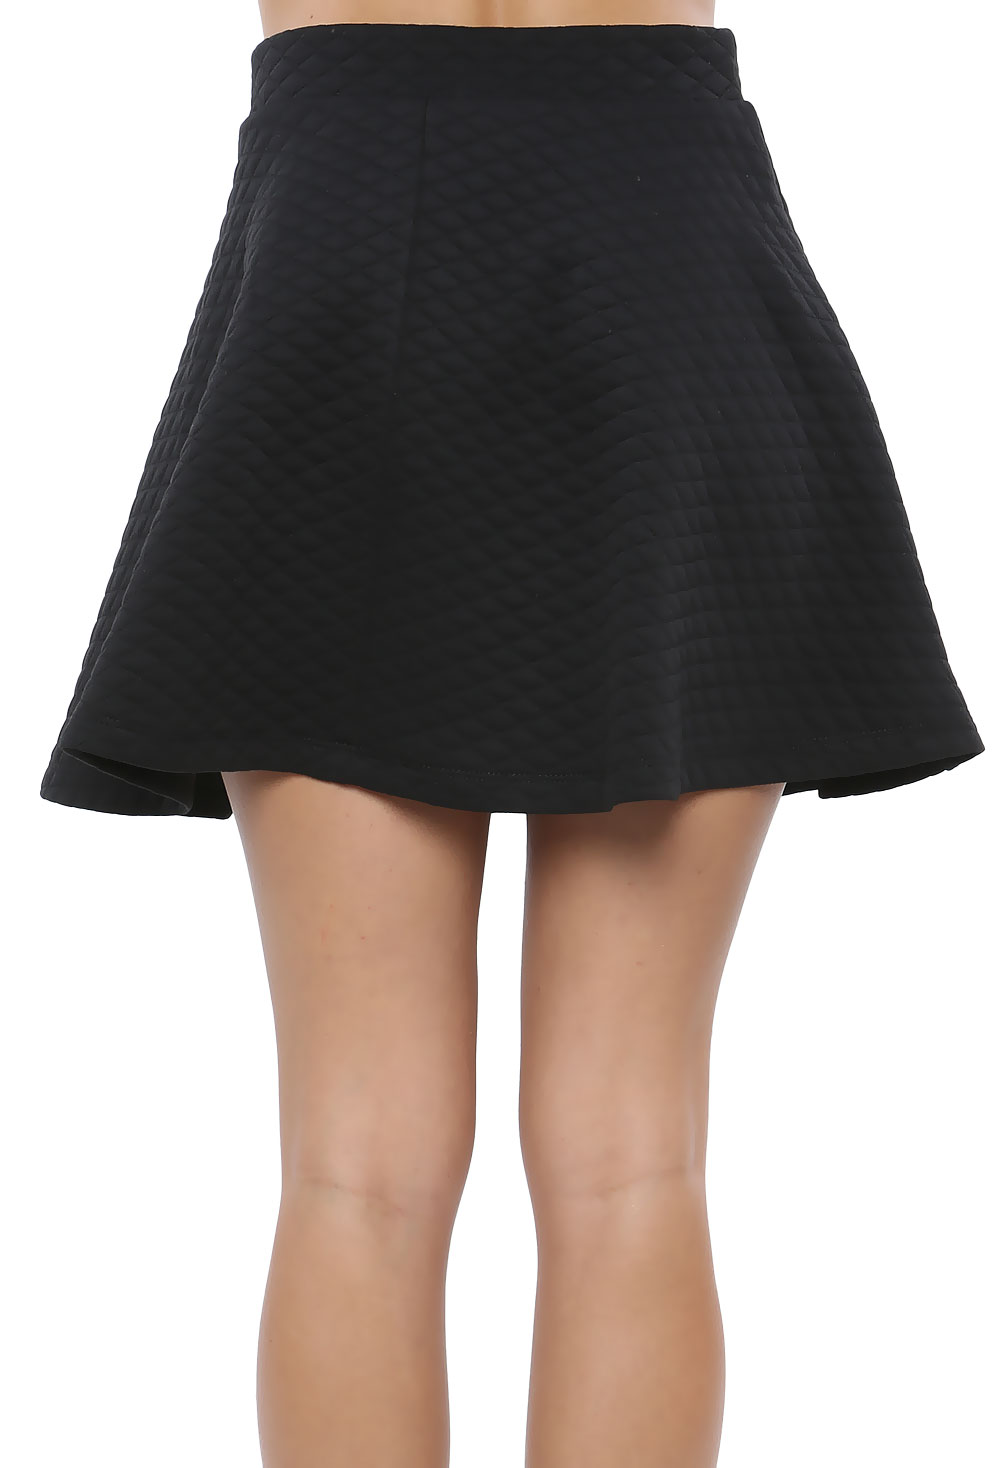 Stitched Flare Skirt